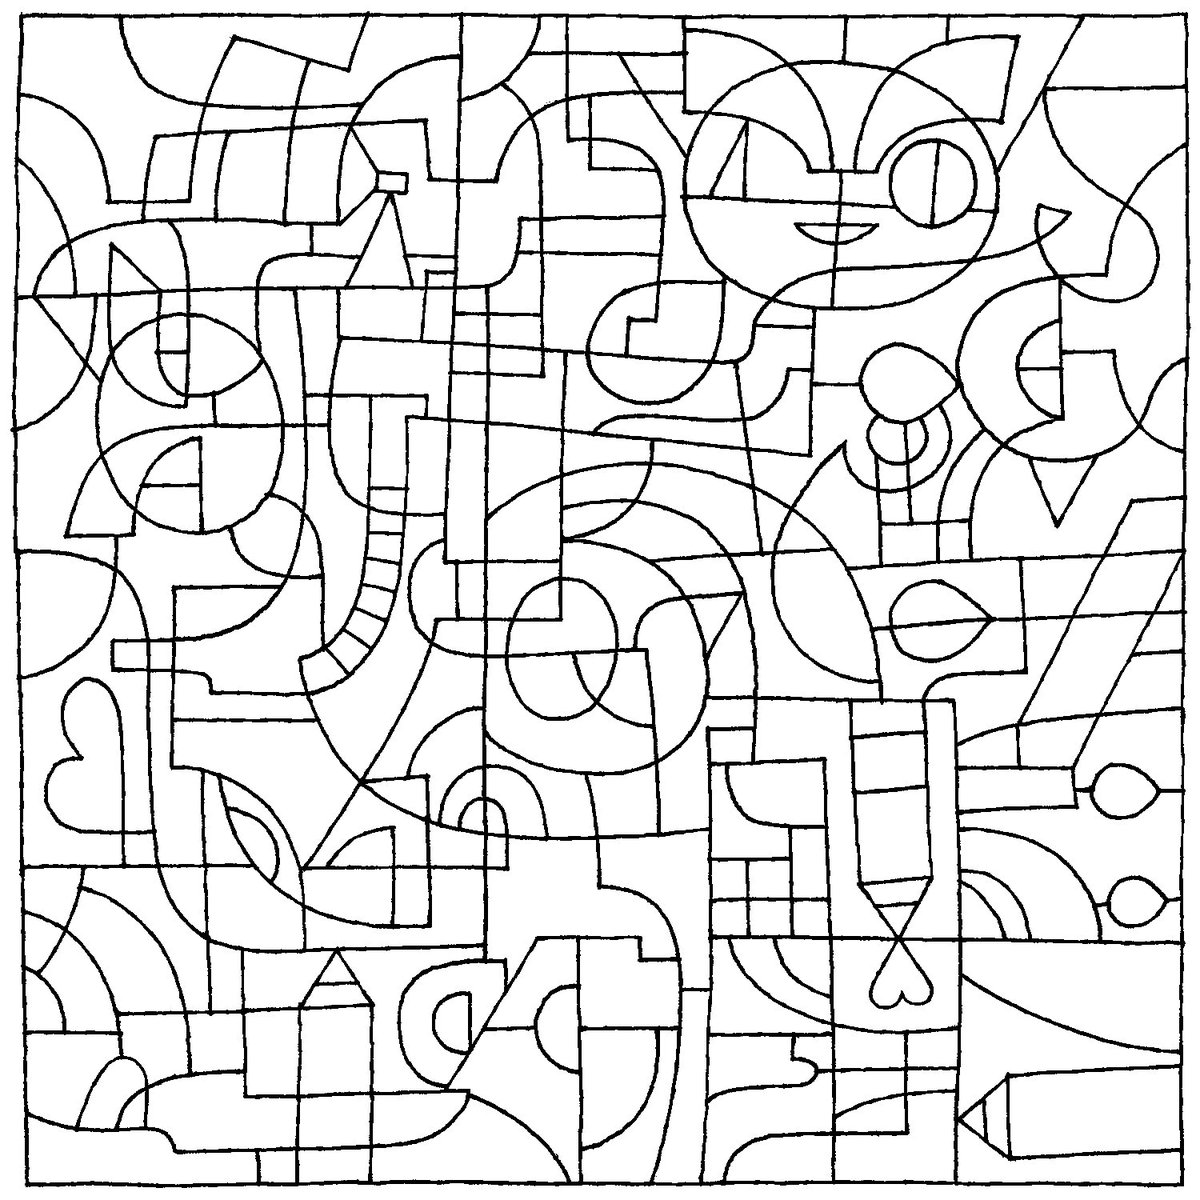 Join Our 16th Birthday Coloring Challenge And Find